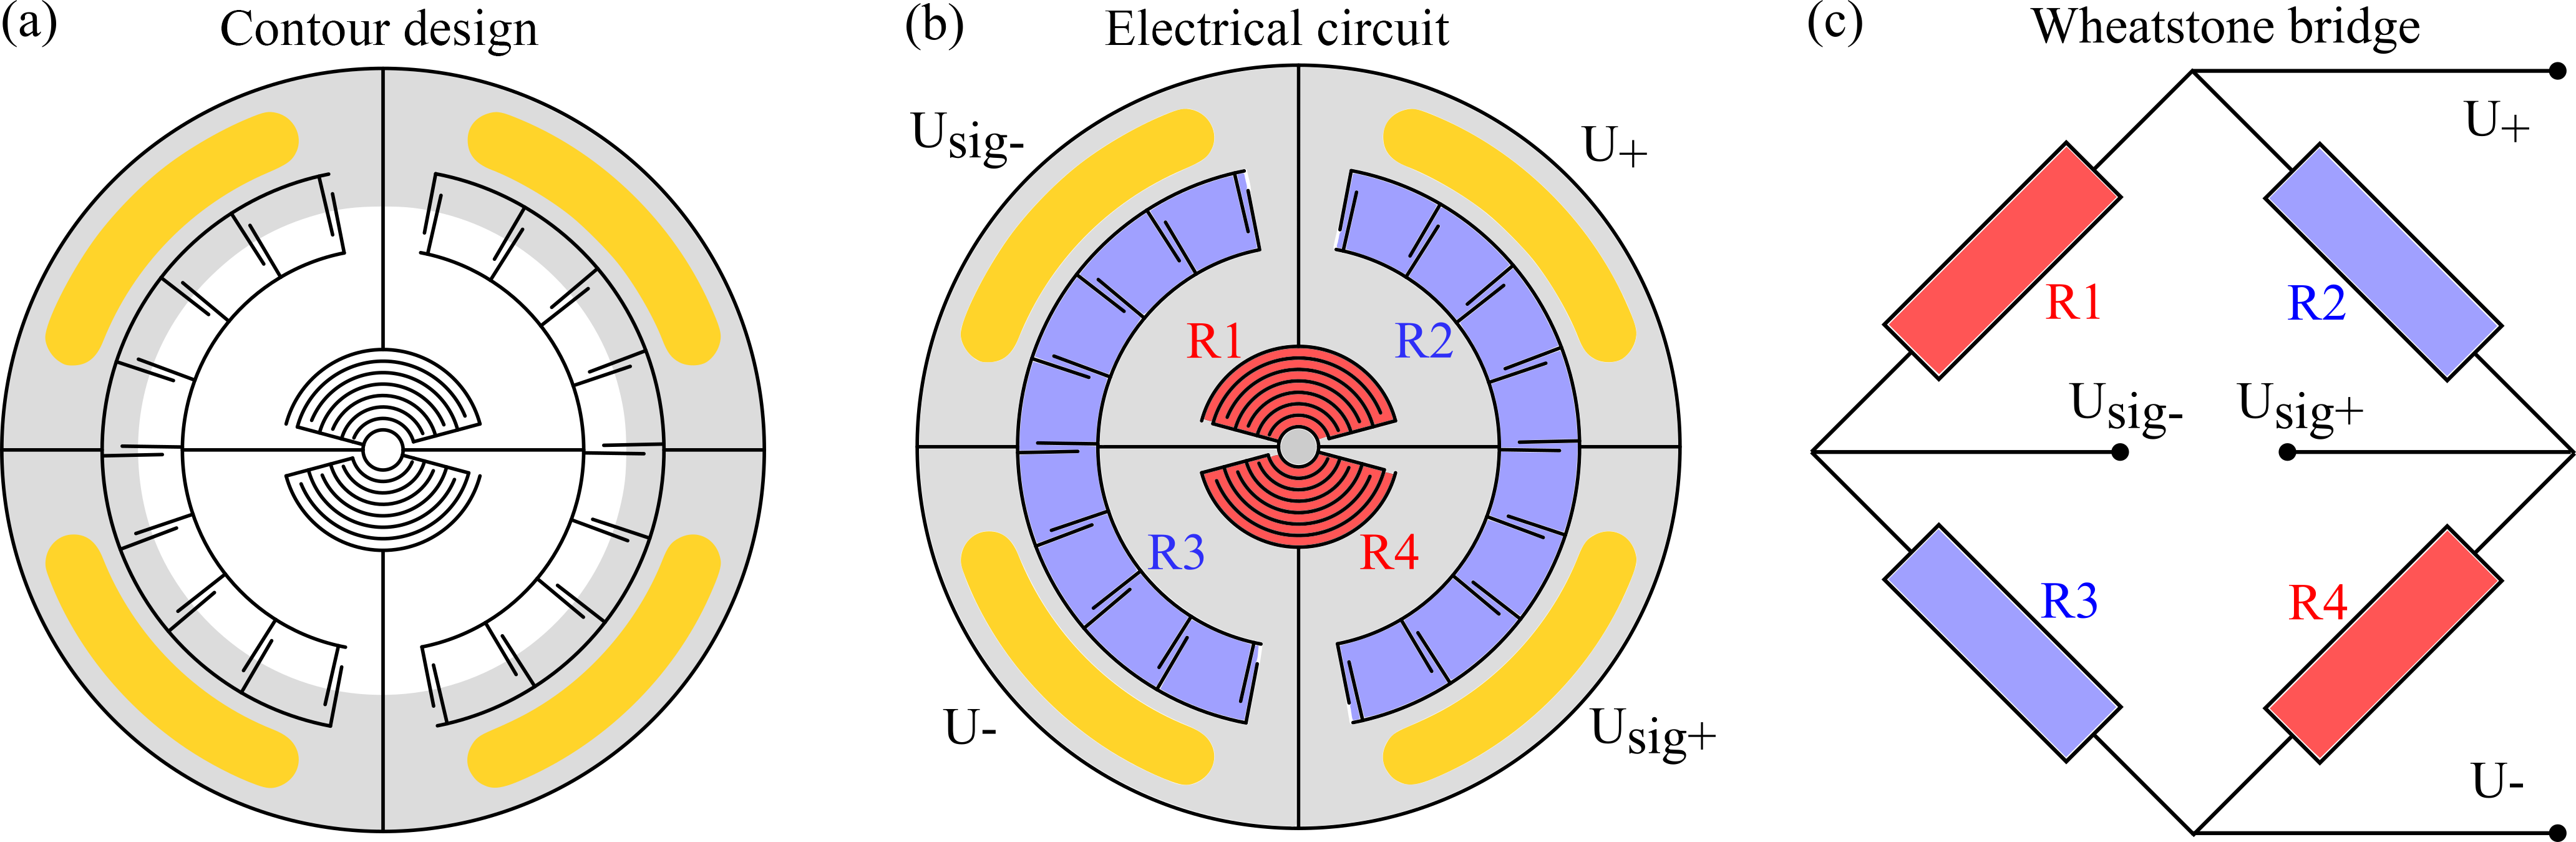 By At Least Two Radial Circuits 8 Radial Circuits In Australia